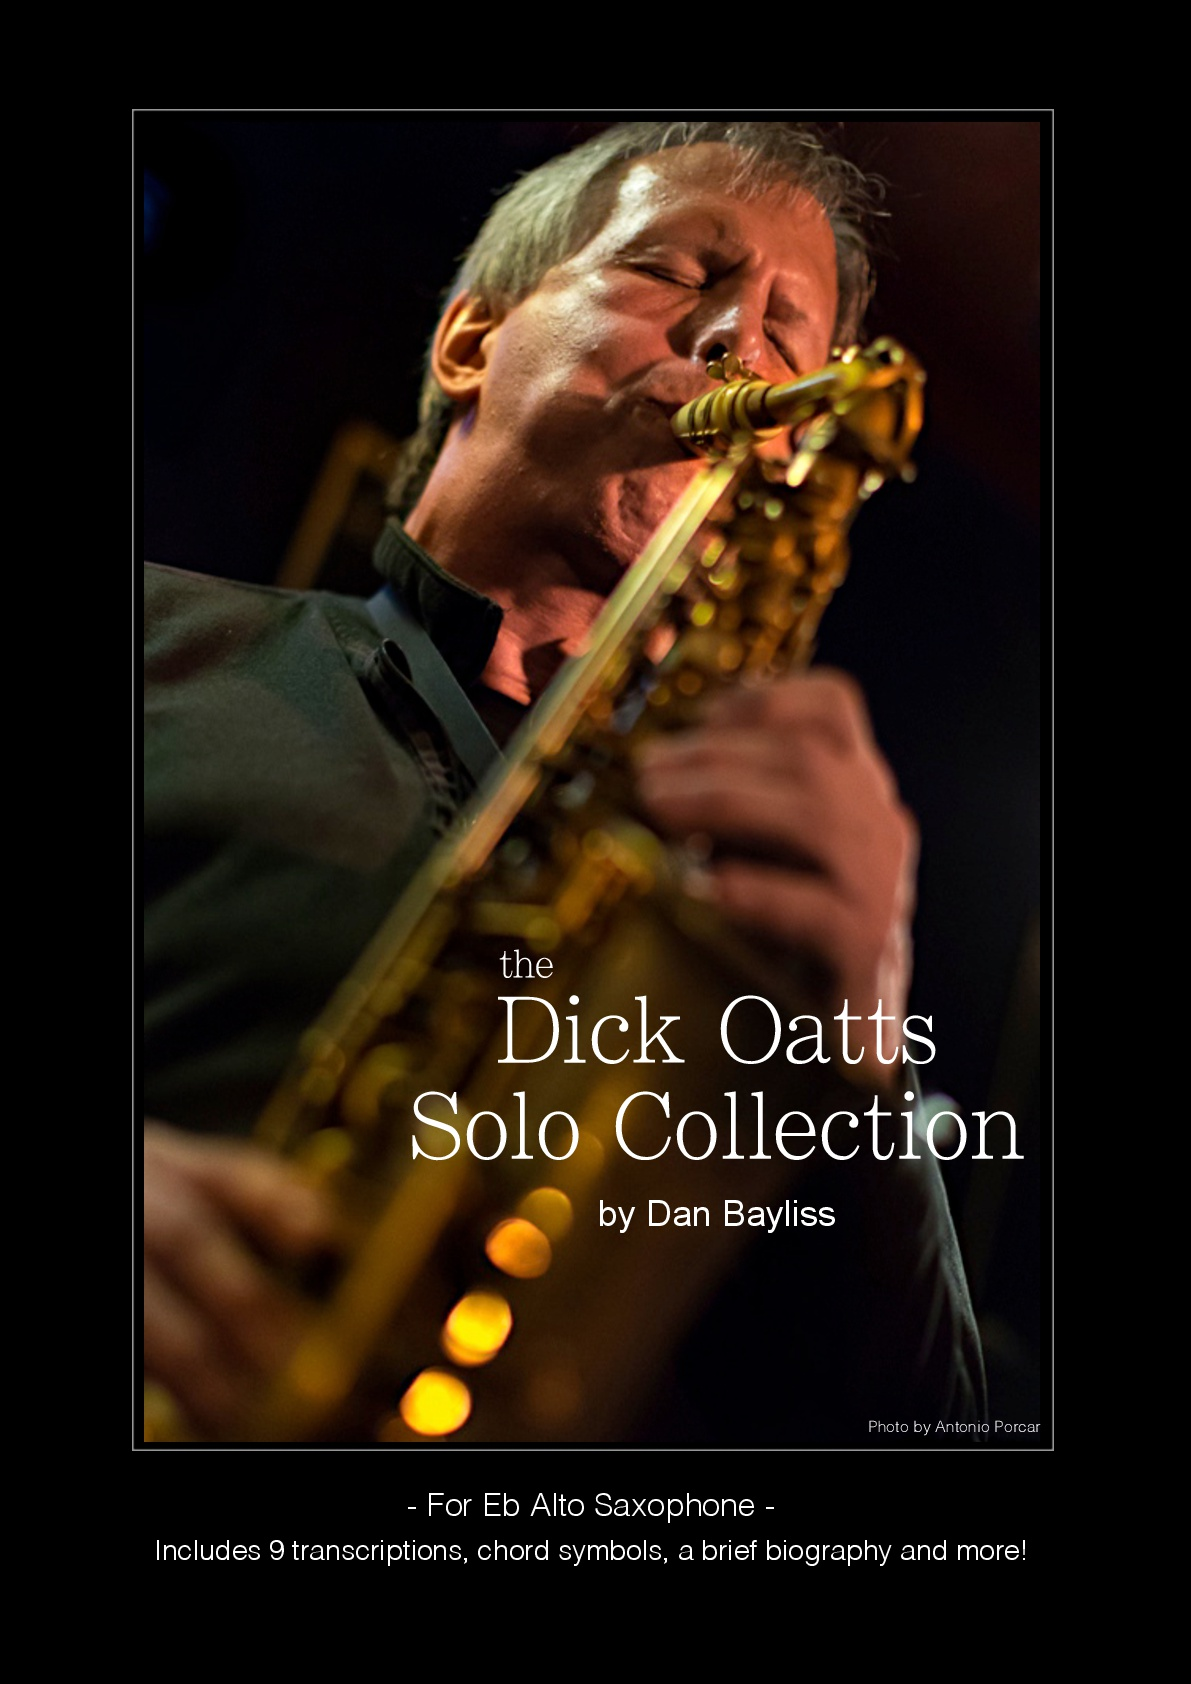 The Dick Oatts Solo Collection Review